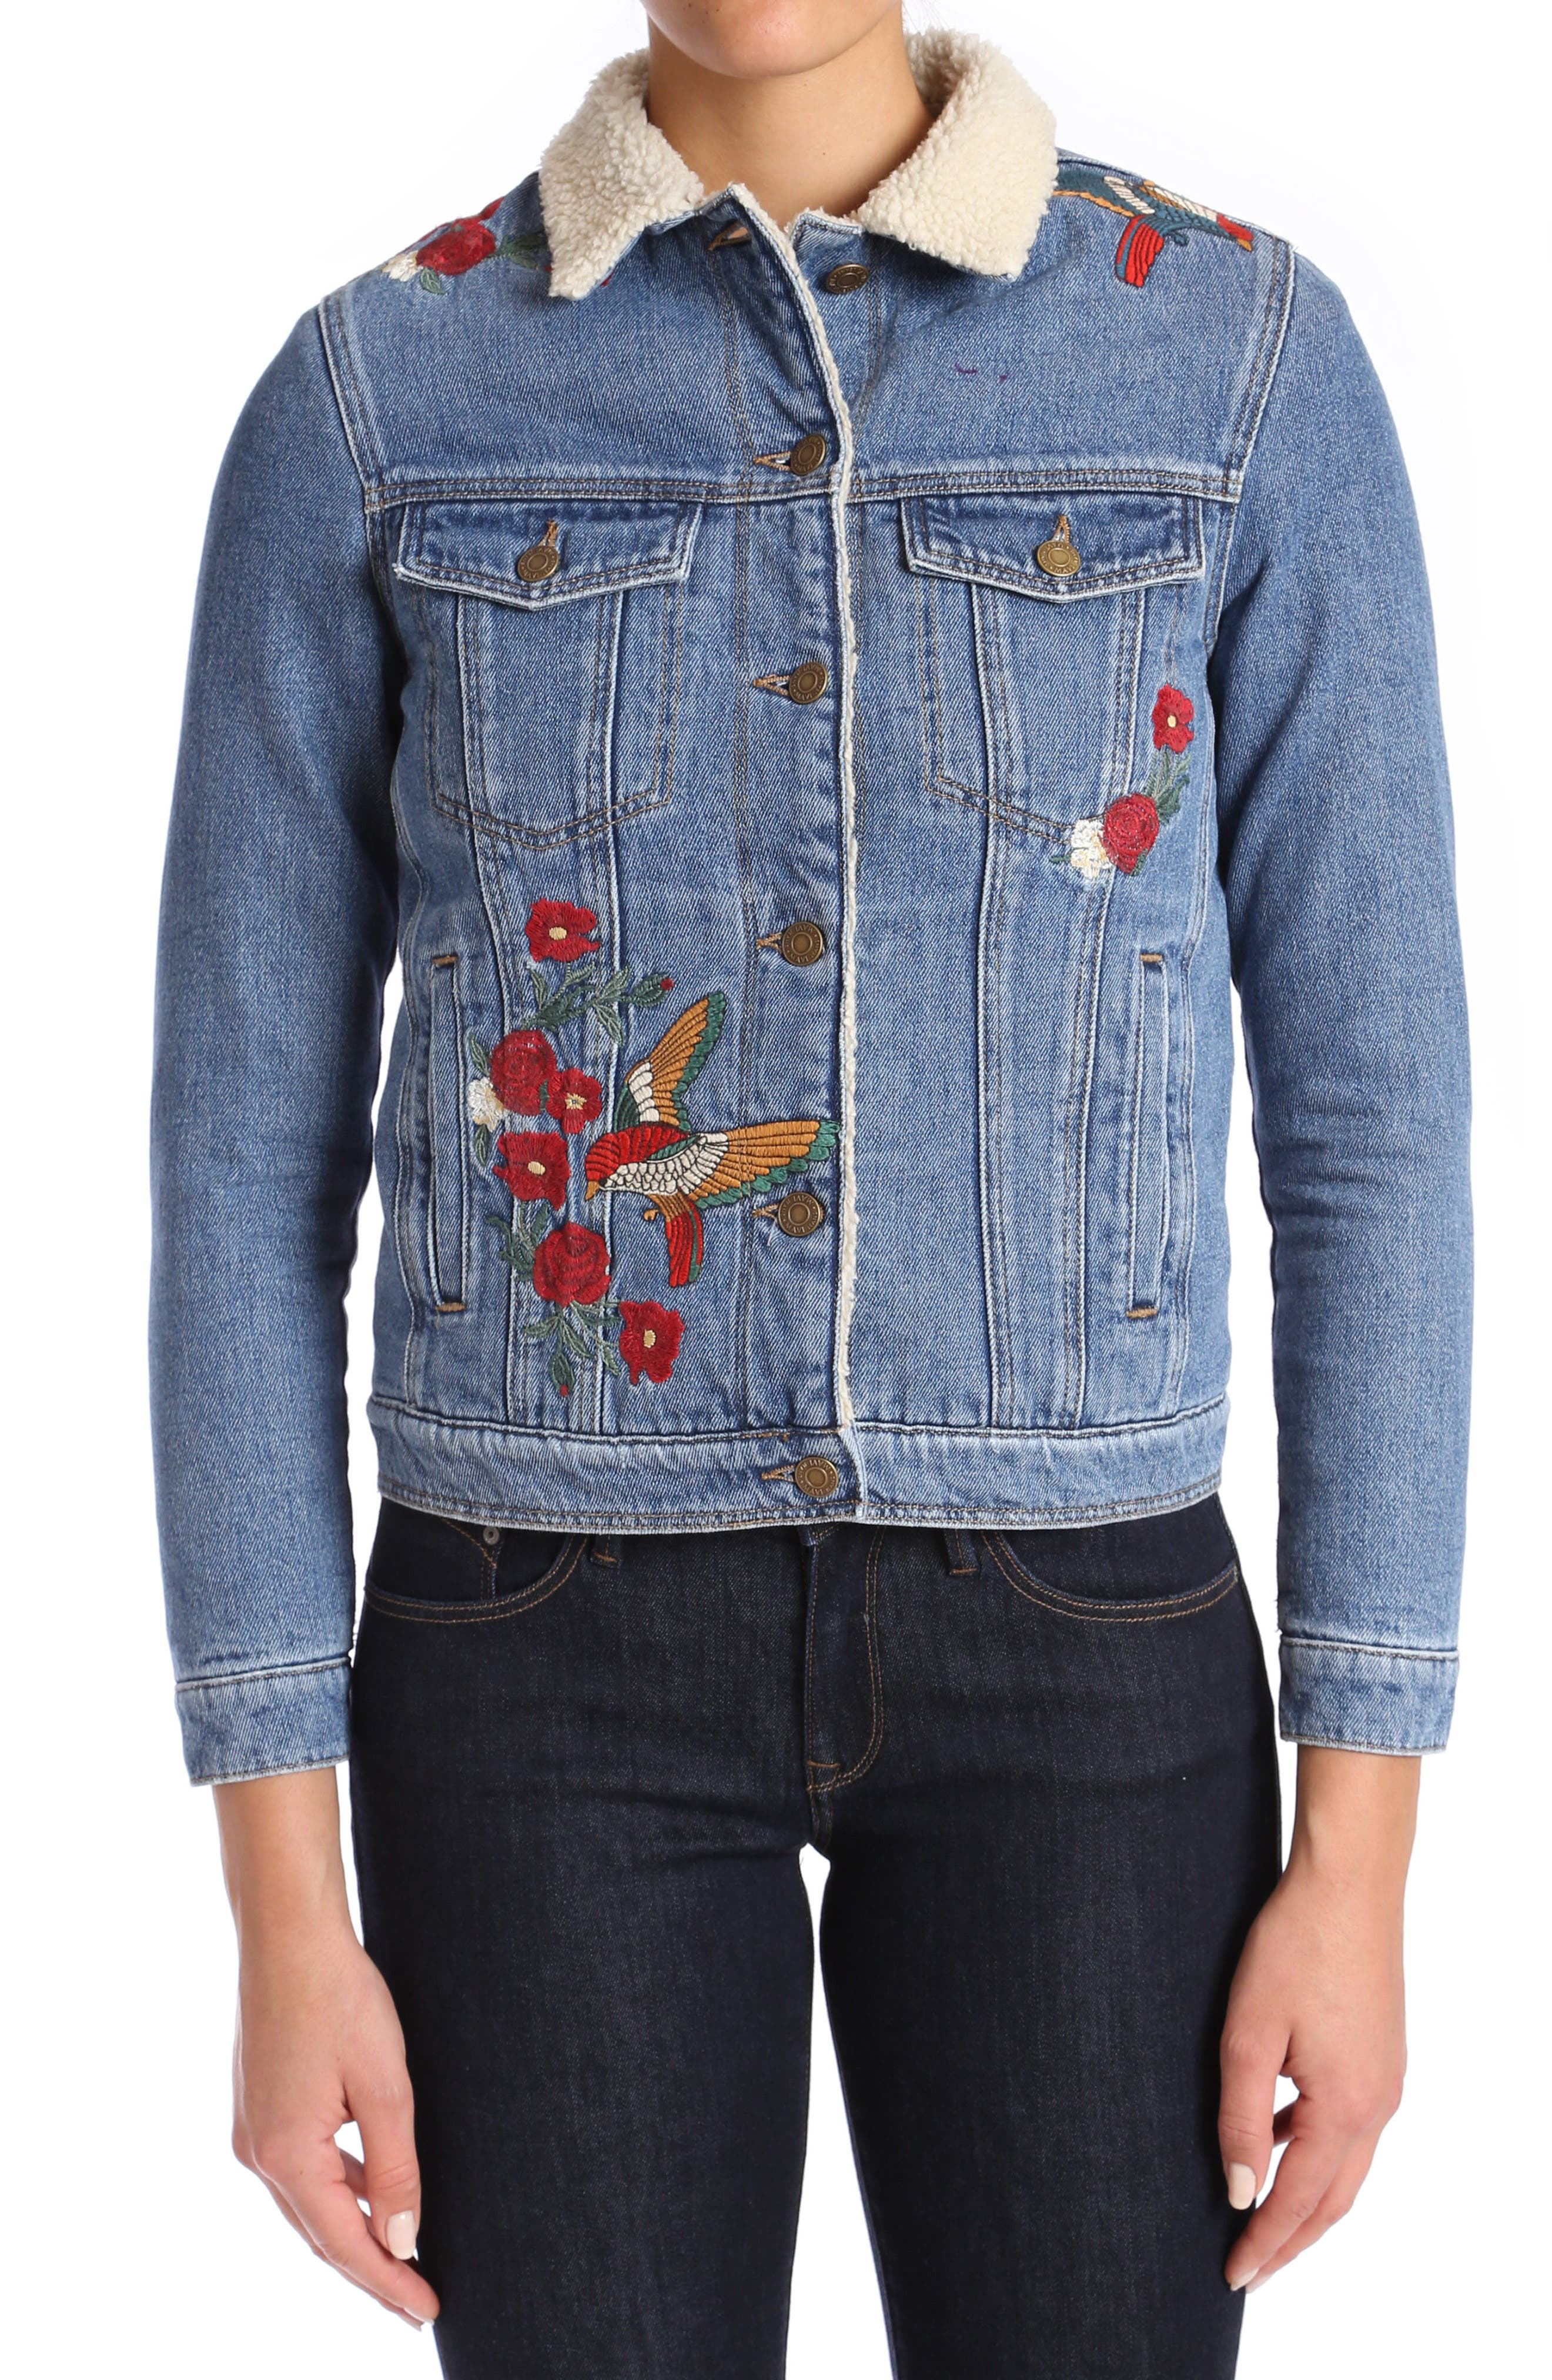 Katy Embroidered Denim Jacket,                             Main thumbnail 1, color,                             Mid Garden Embroidery